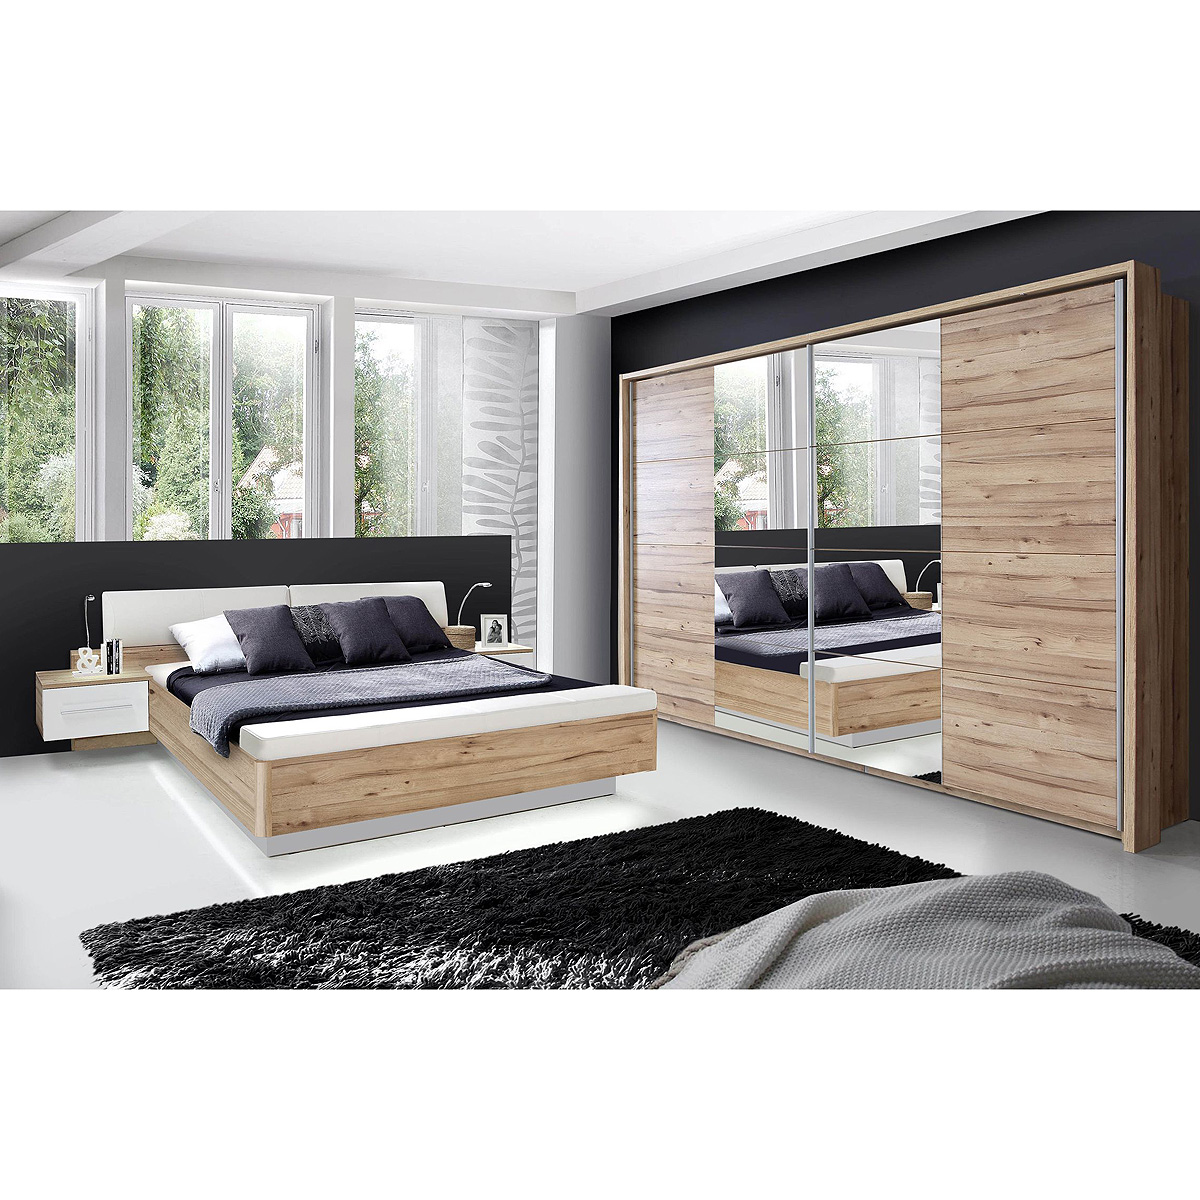 schlafzimmerset minero schlafzimmer schrank bett nachtkommode planked eiche wei ebay. Black Bedroom Furniture Sets. Home Design Ideas